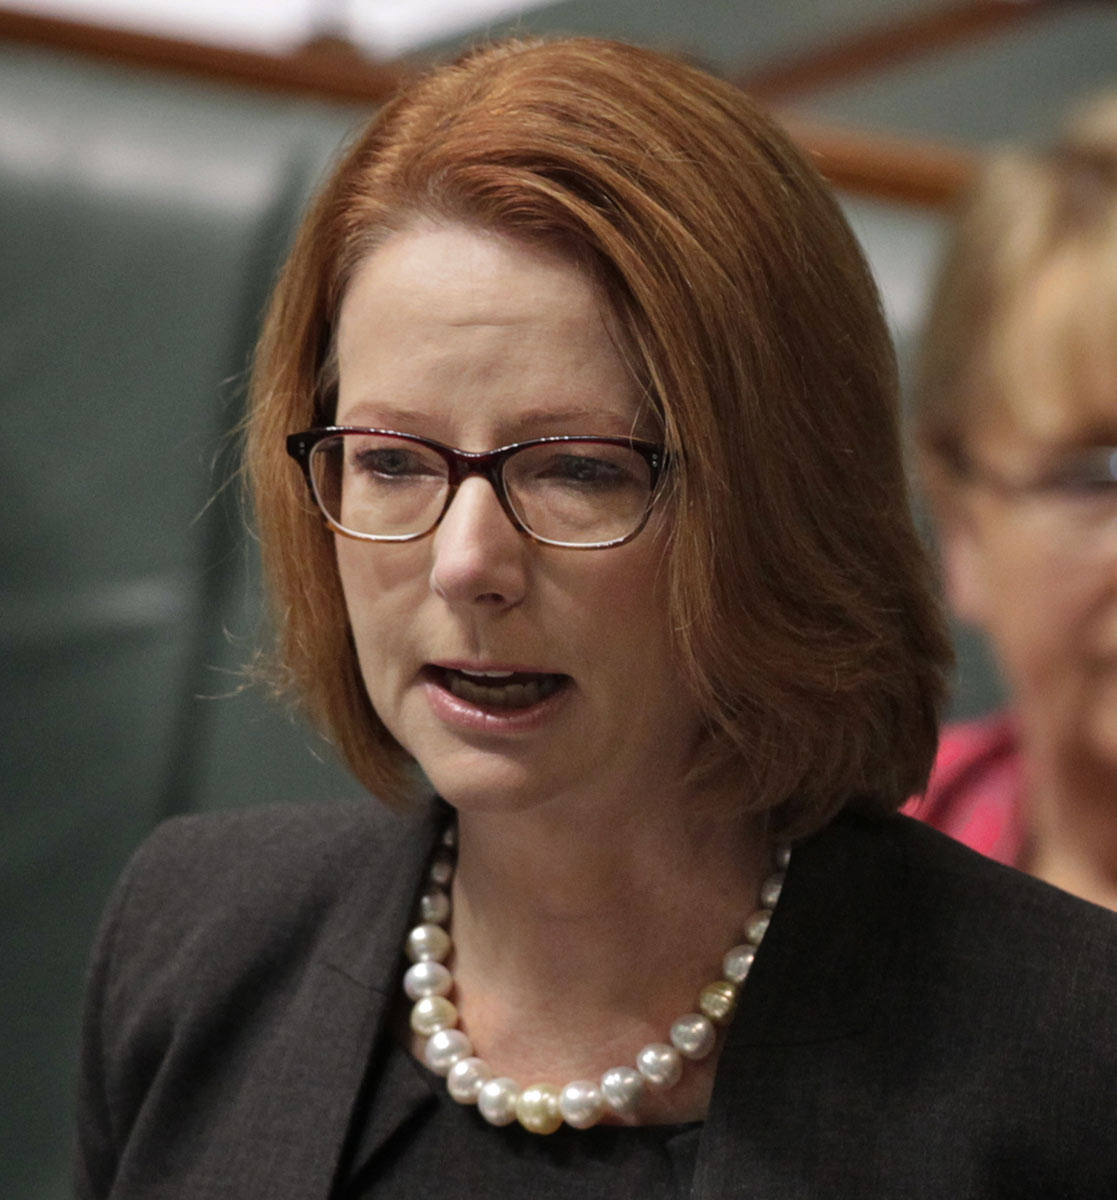 Julia Gillard who appears quite emotional addresses the chamber at Parliament House. - click to view larger image